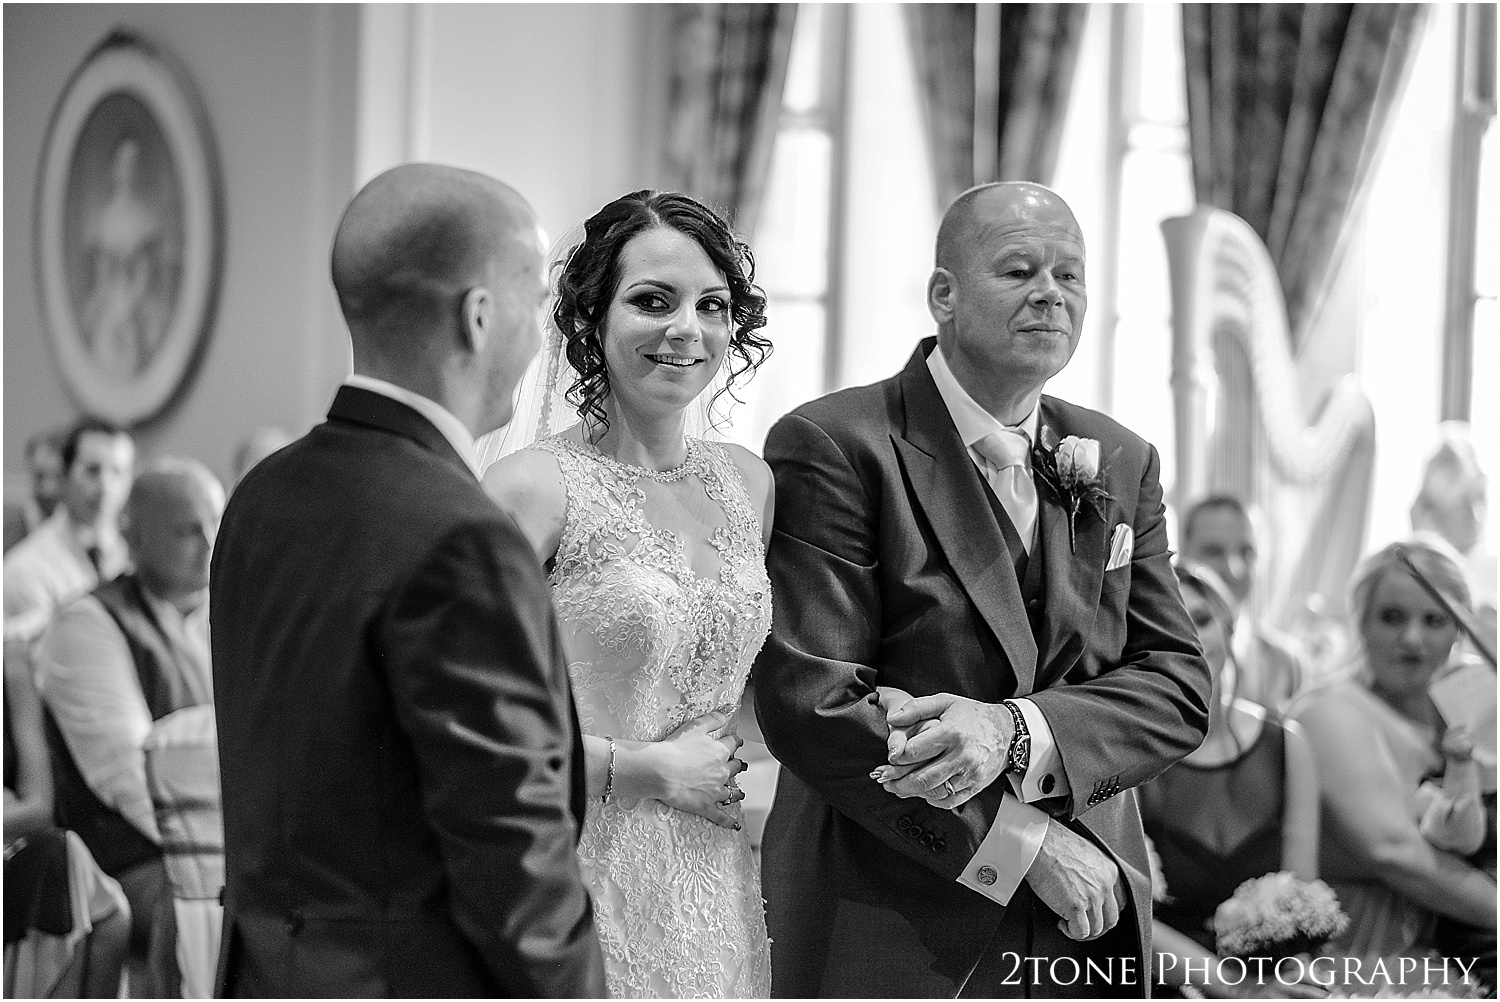 Crathorne Hall wedding 31.jpg